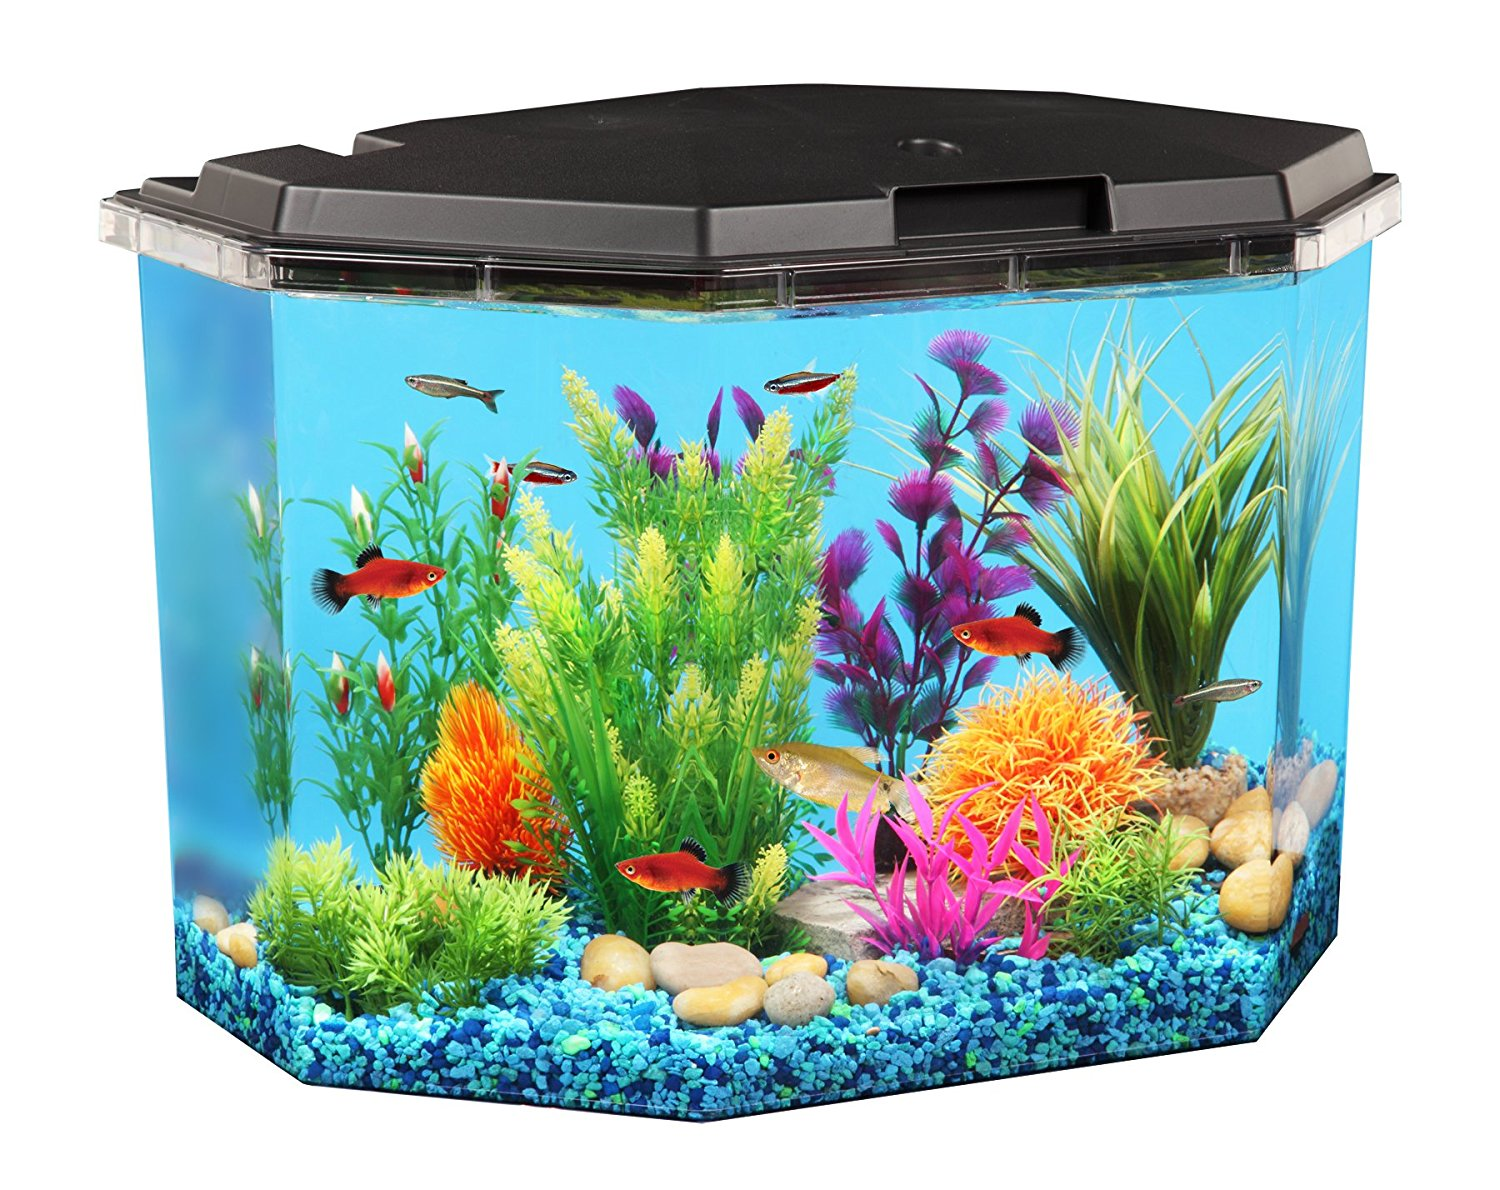 Aquaview 6 5 Gallon Fish Tank With Filter